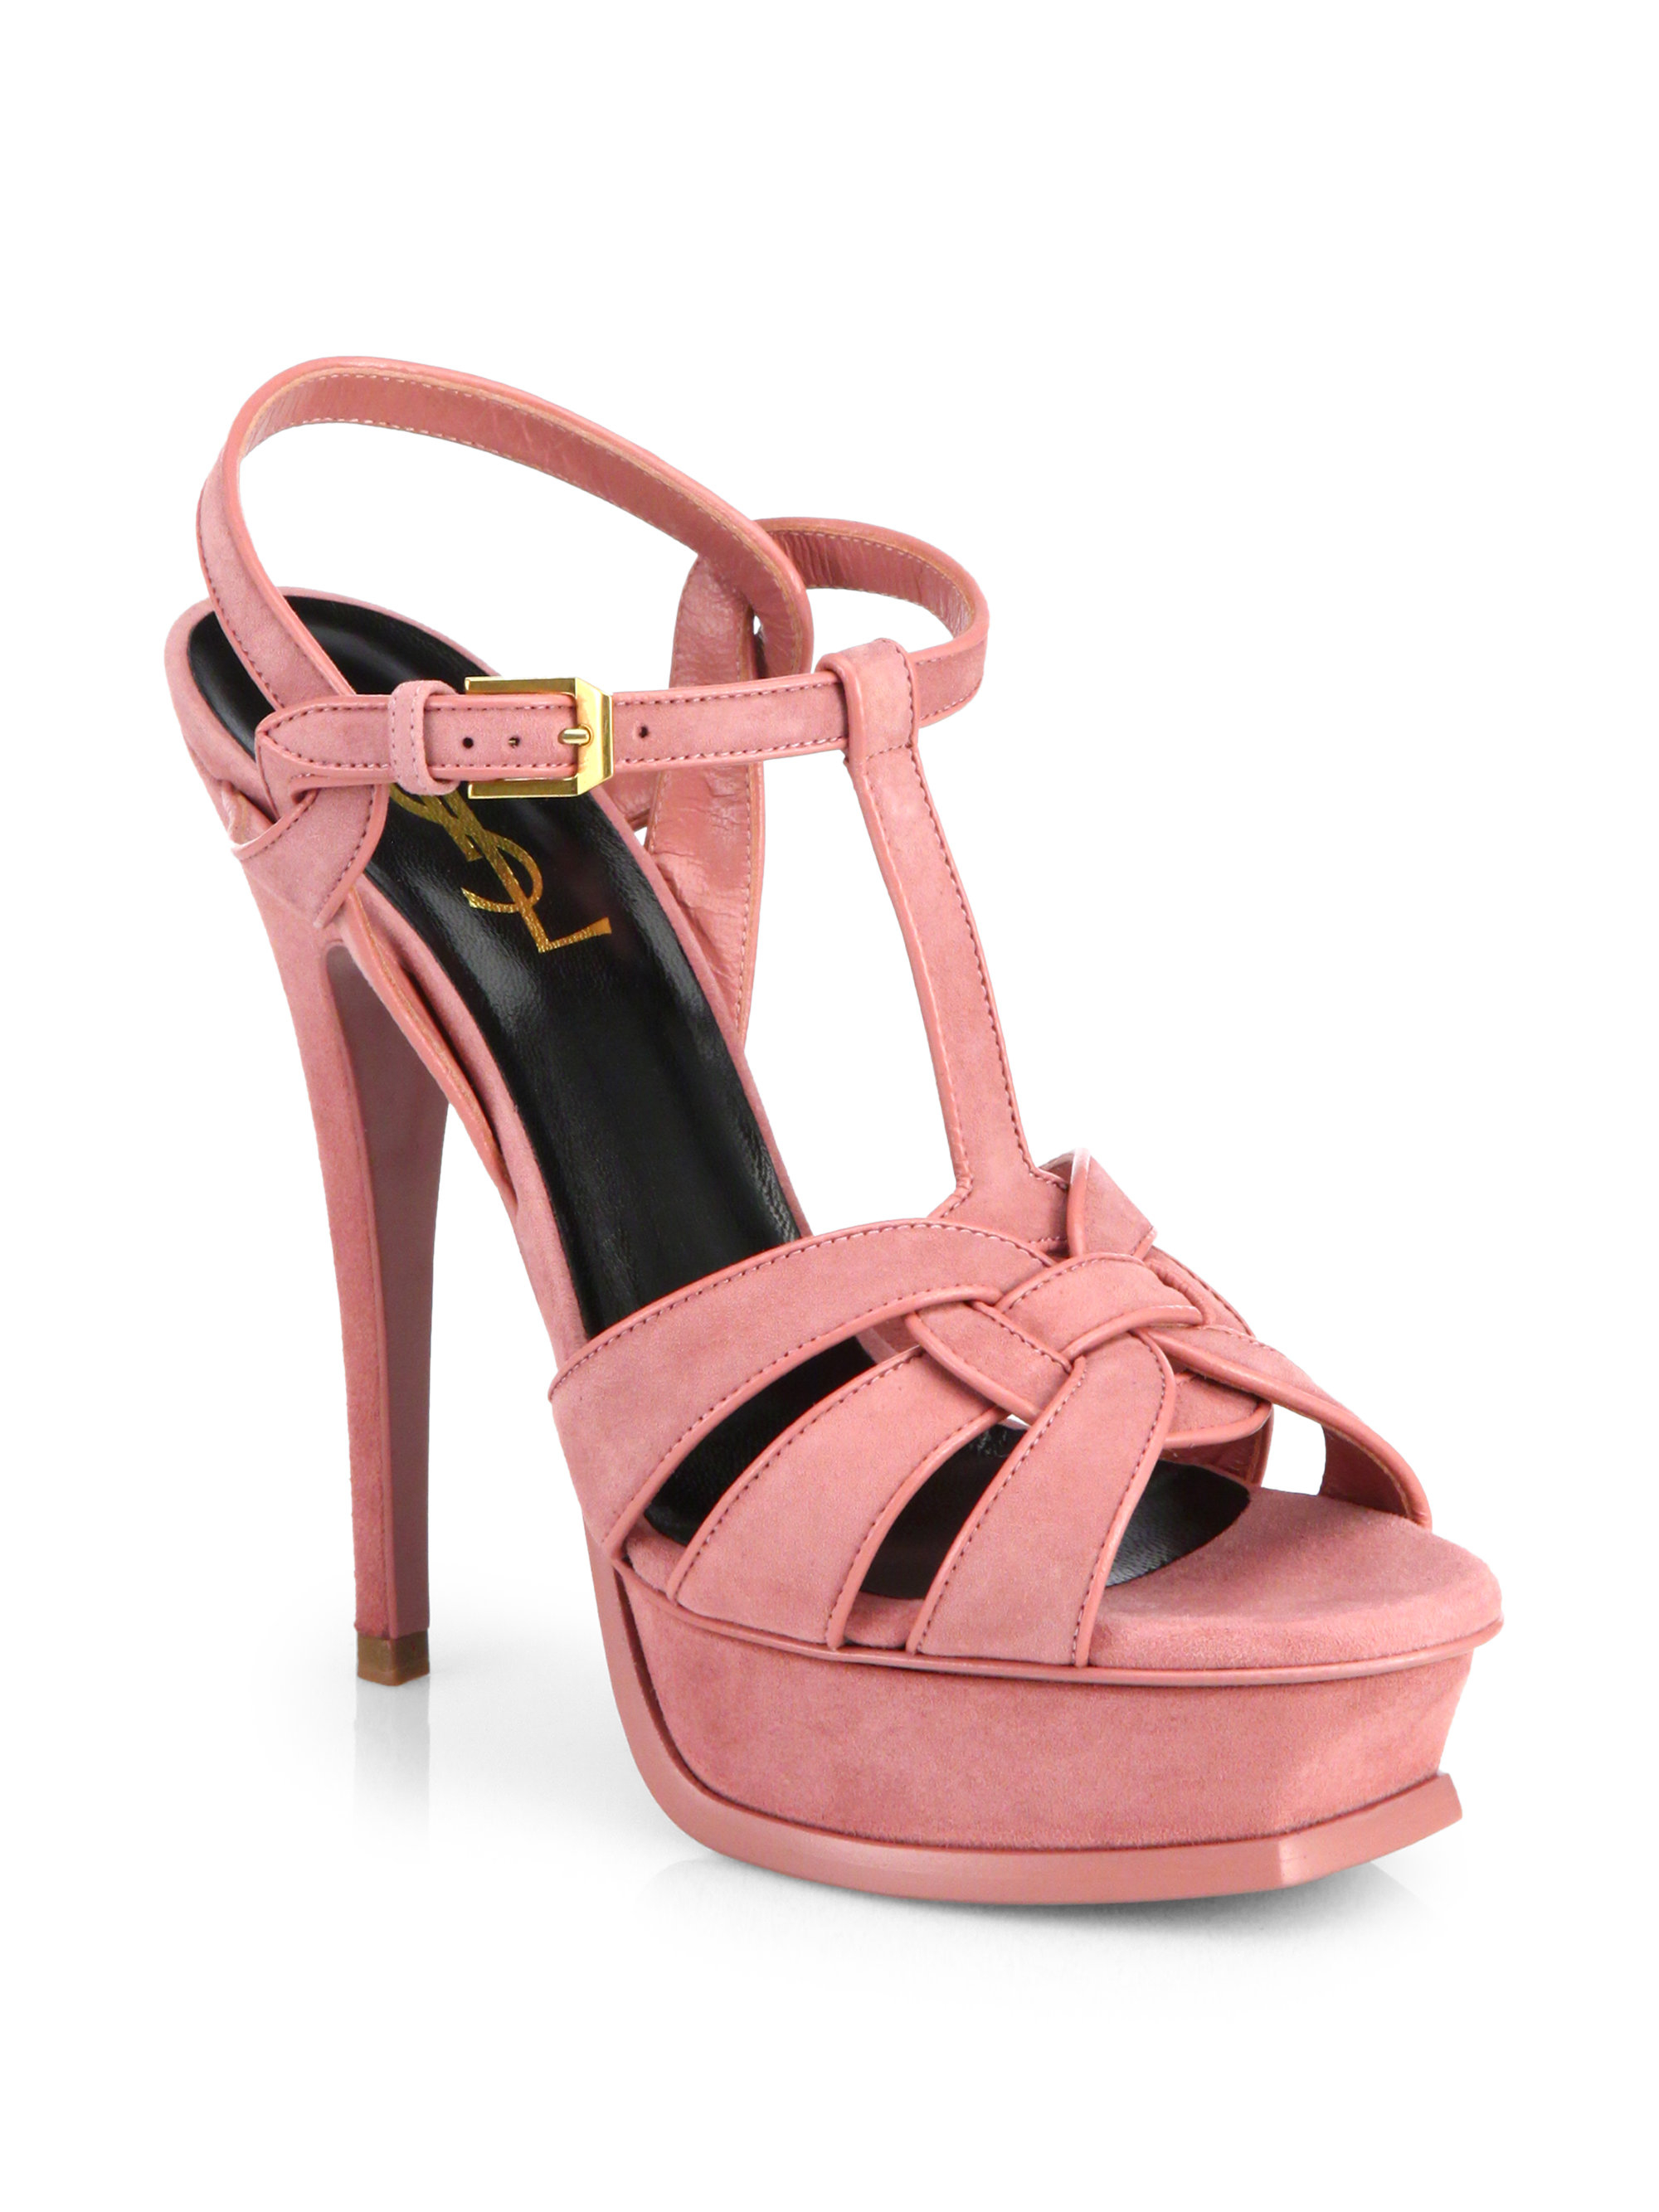 205d39ce178 Saint Laurent Suede Tribute Platform Sandals in Pink - Lyst